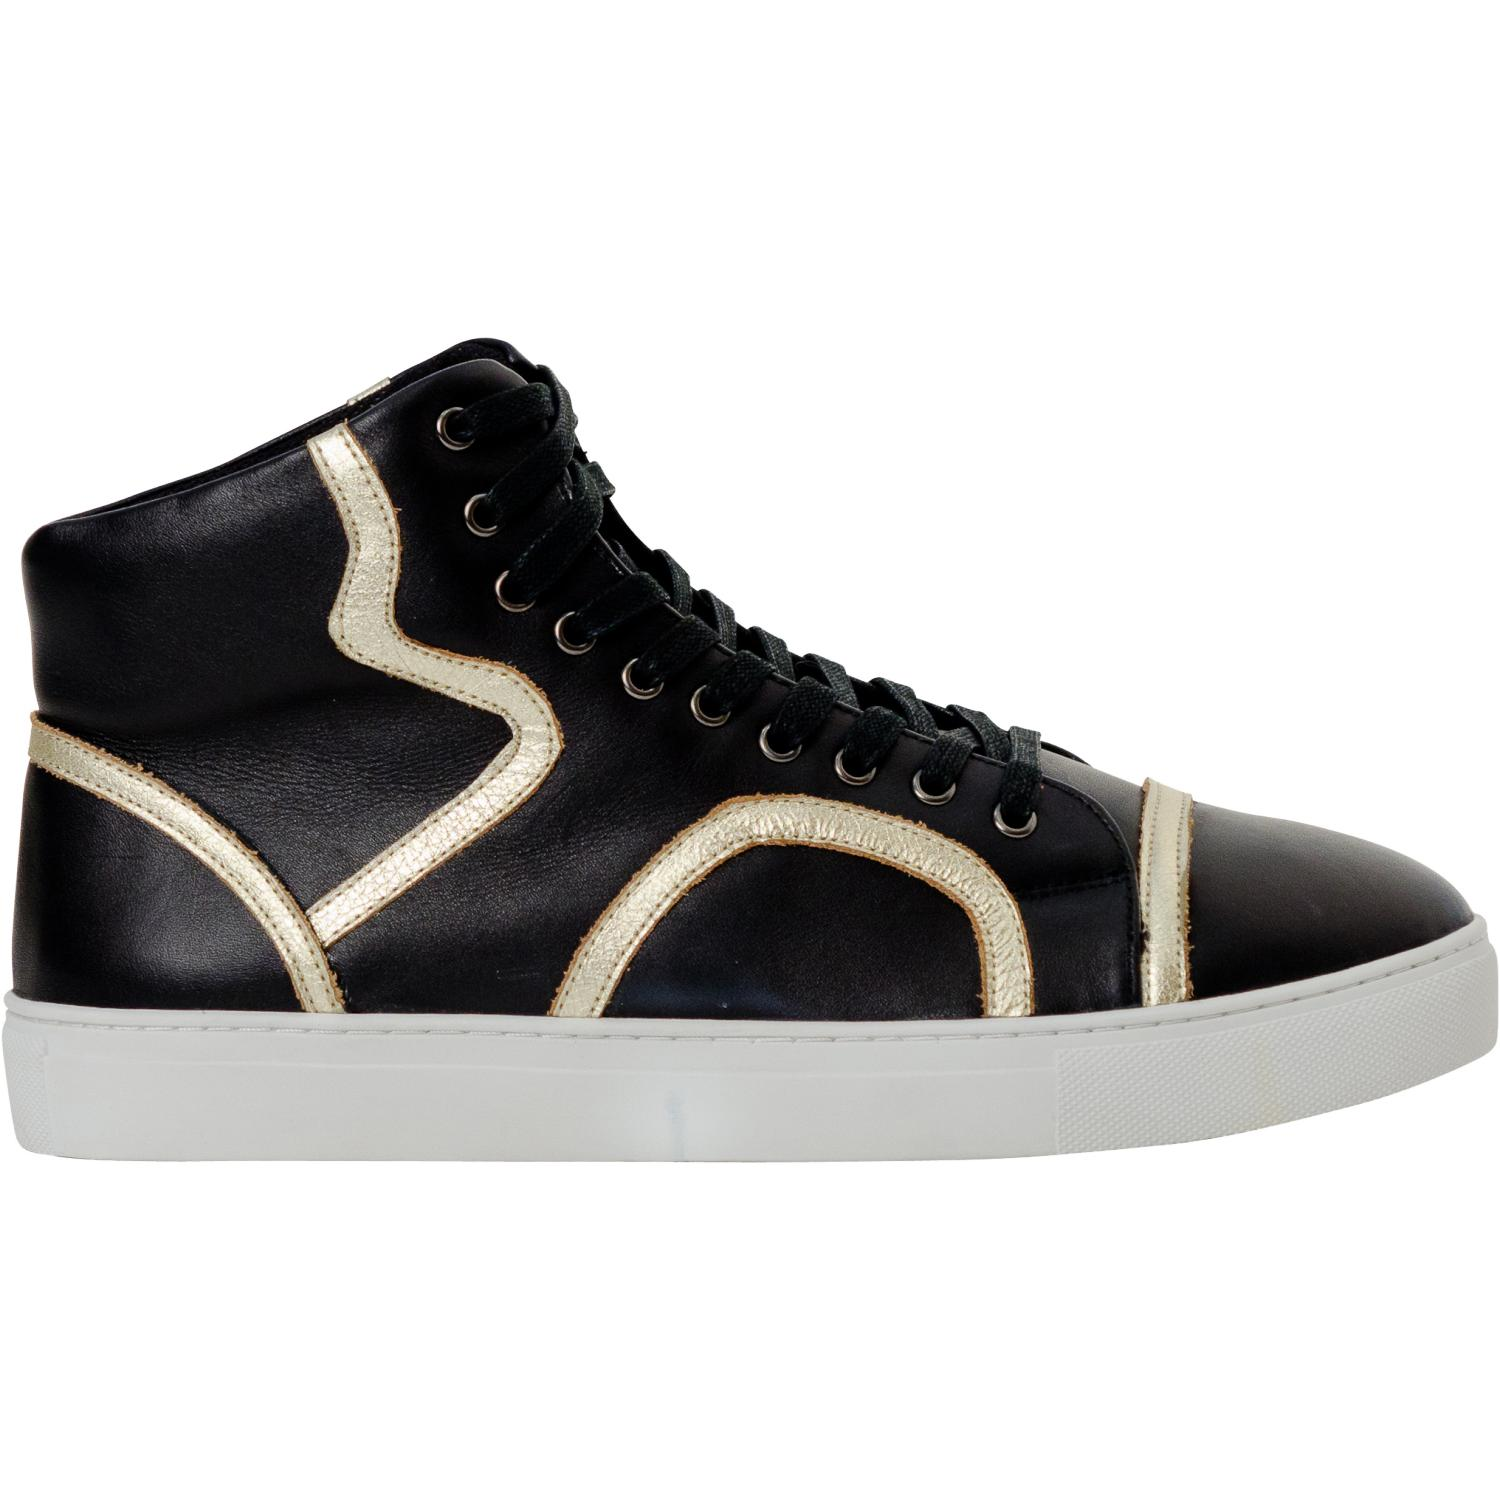 Bogart Black And Gold Paolo Shoes